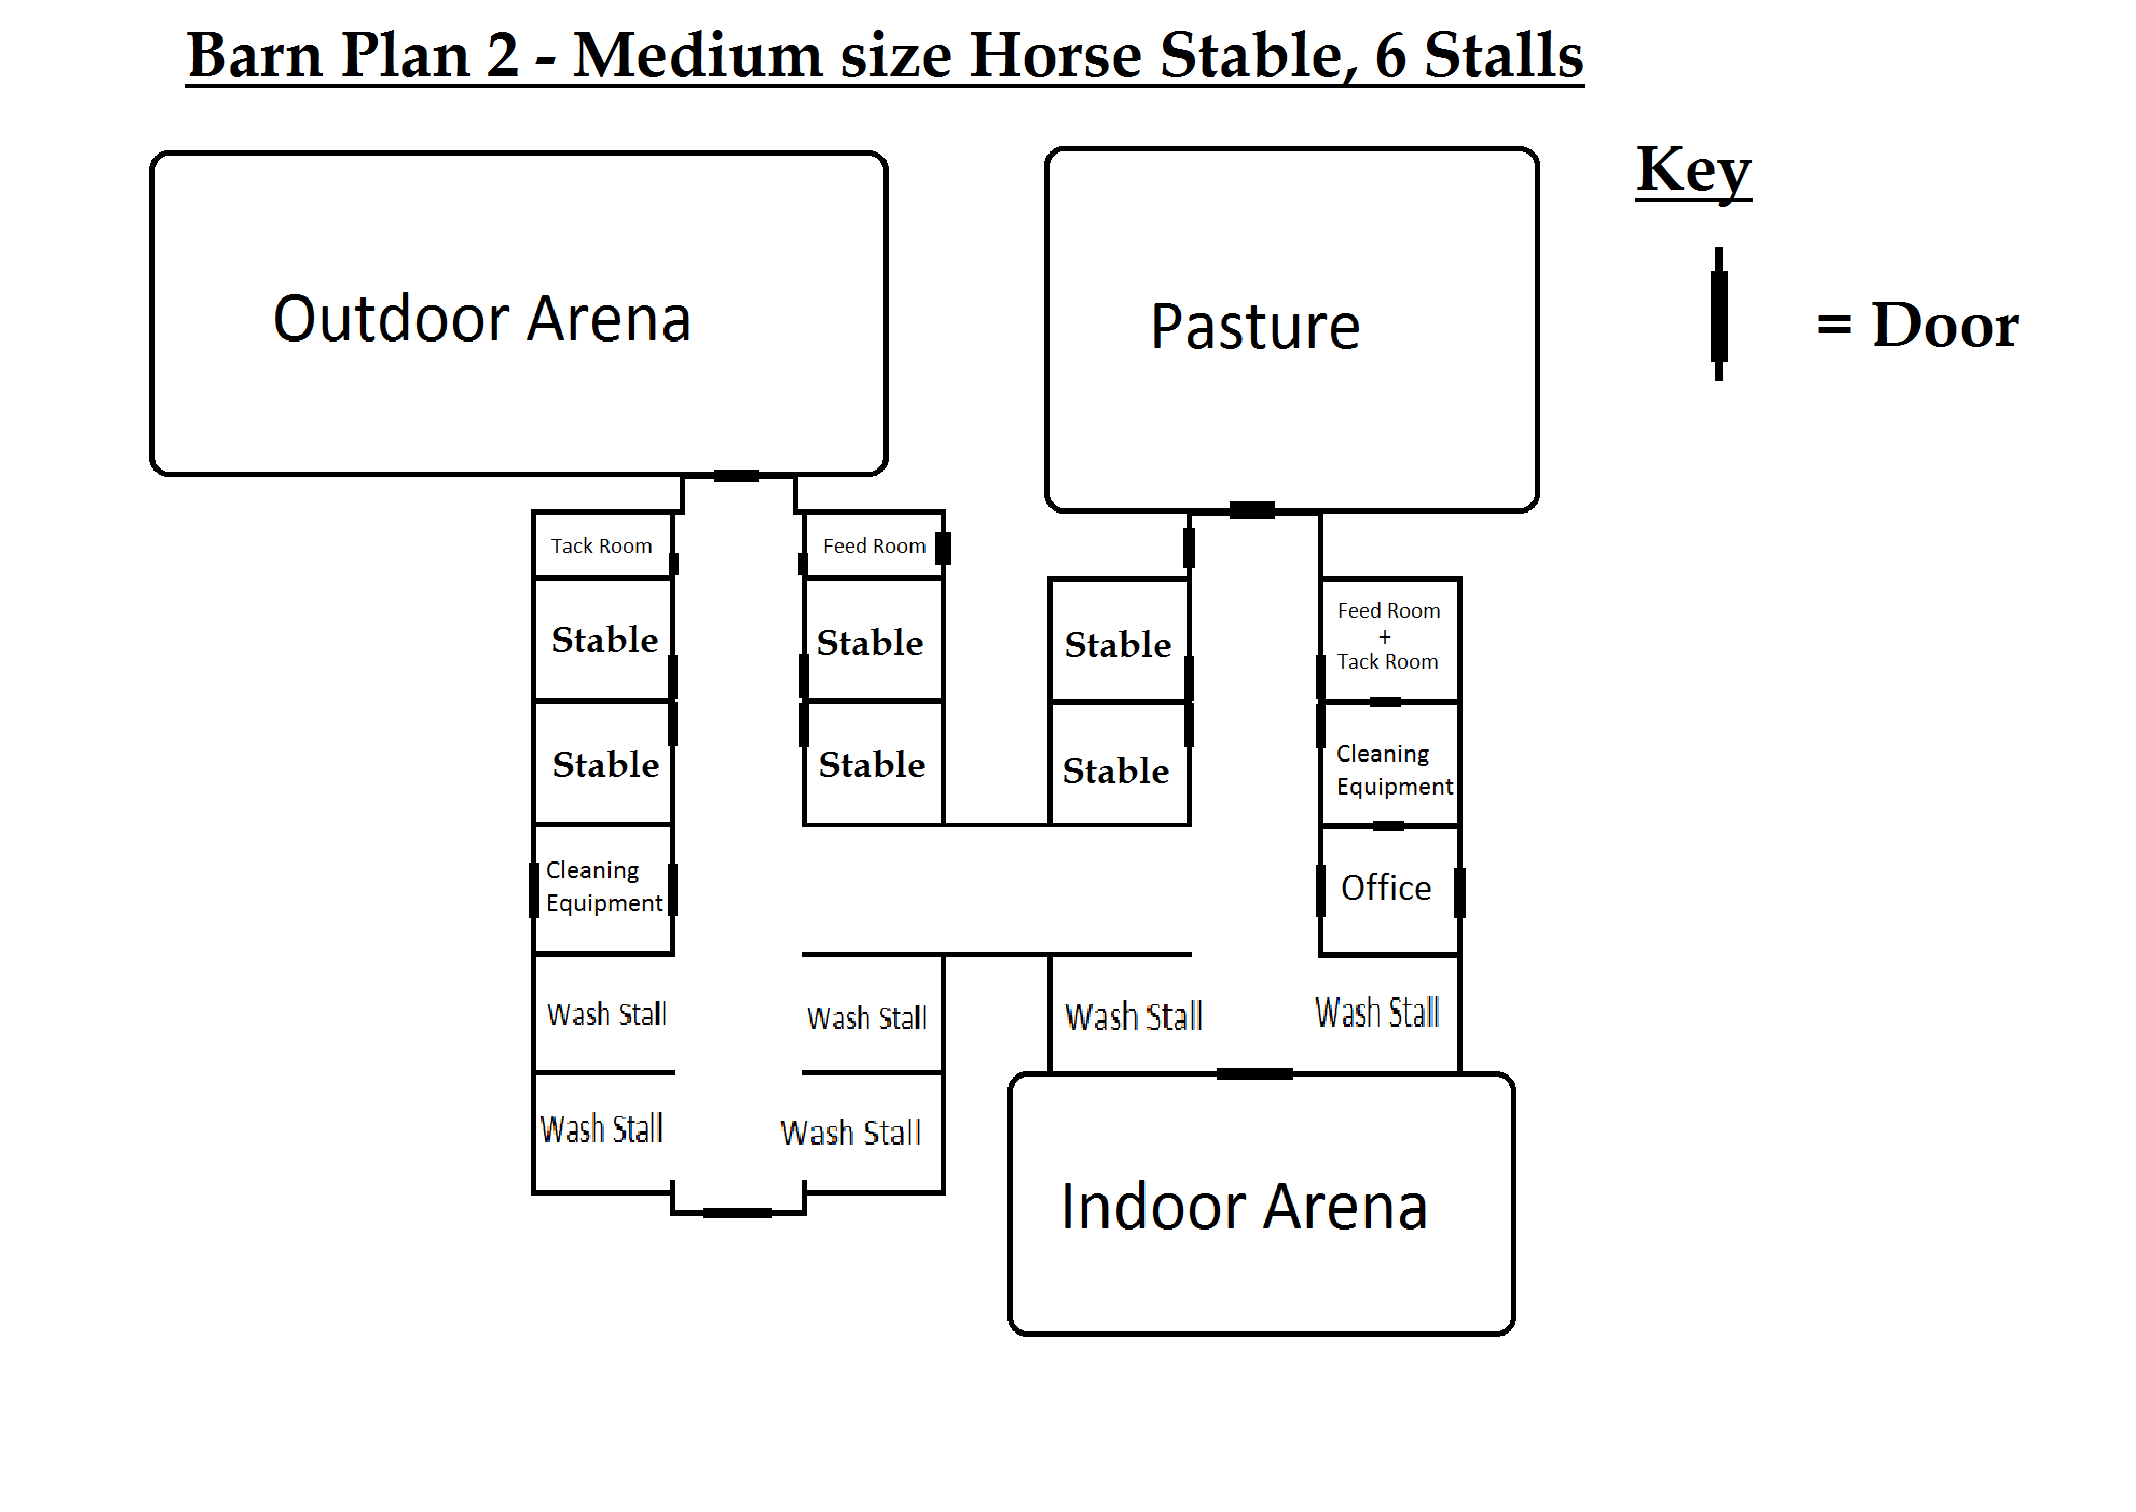 Barn plan 2 medium size horse stable 6 stall 39 s by for 2 stall horse barn plans